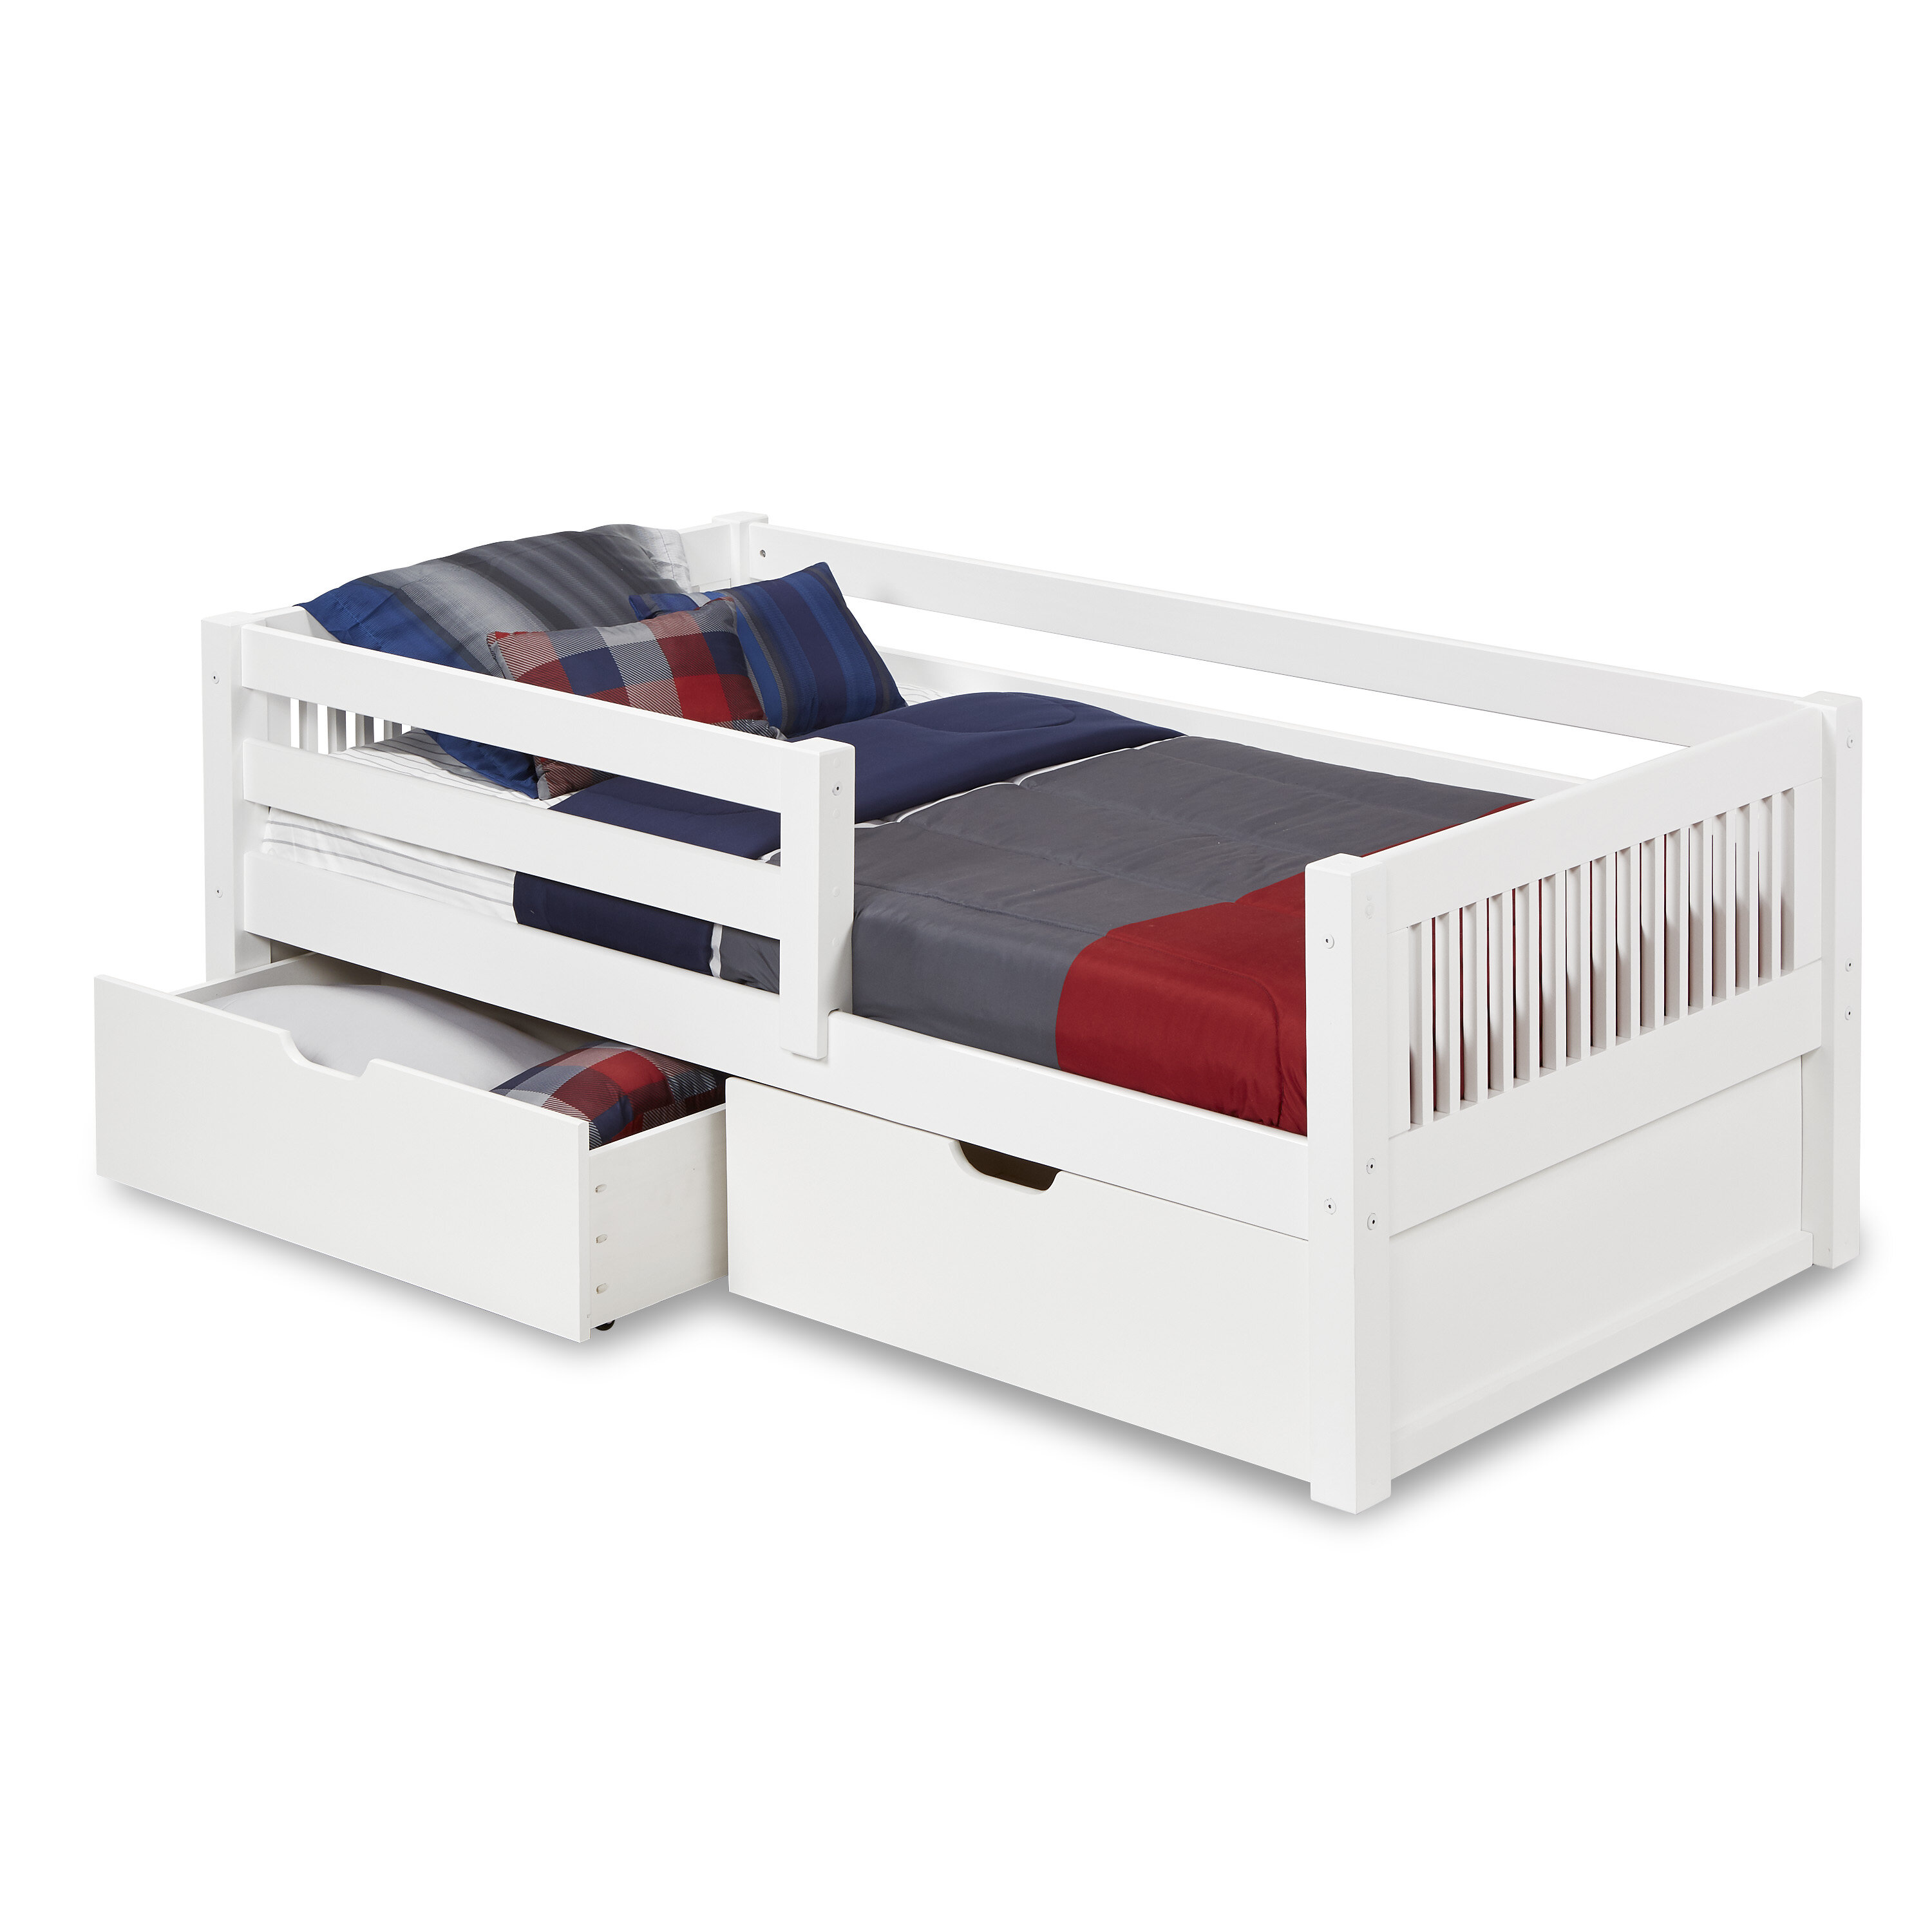 Picture of: Mattress With Storage Plain White Mdf Toddler Bed Children S Beds With Mattresses Home Furniture Diy Lesaintcyr Fr